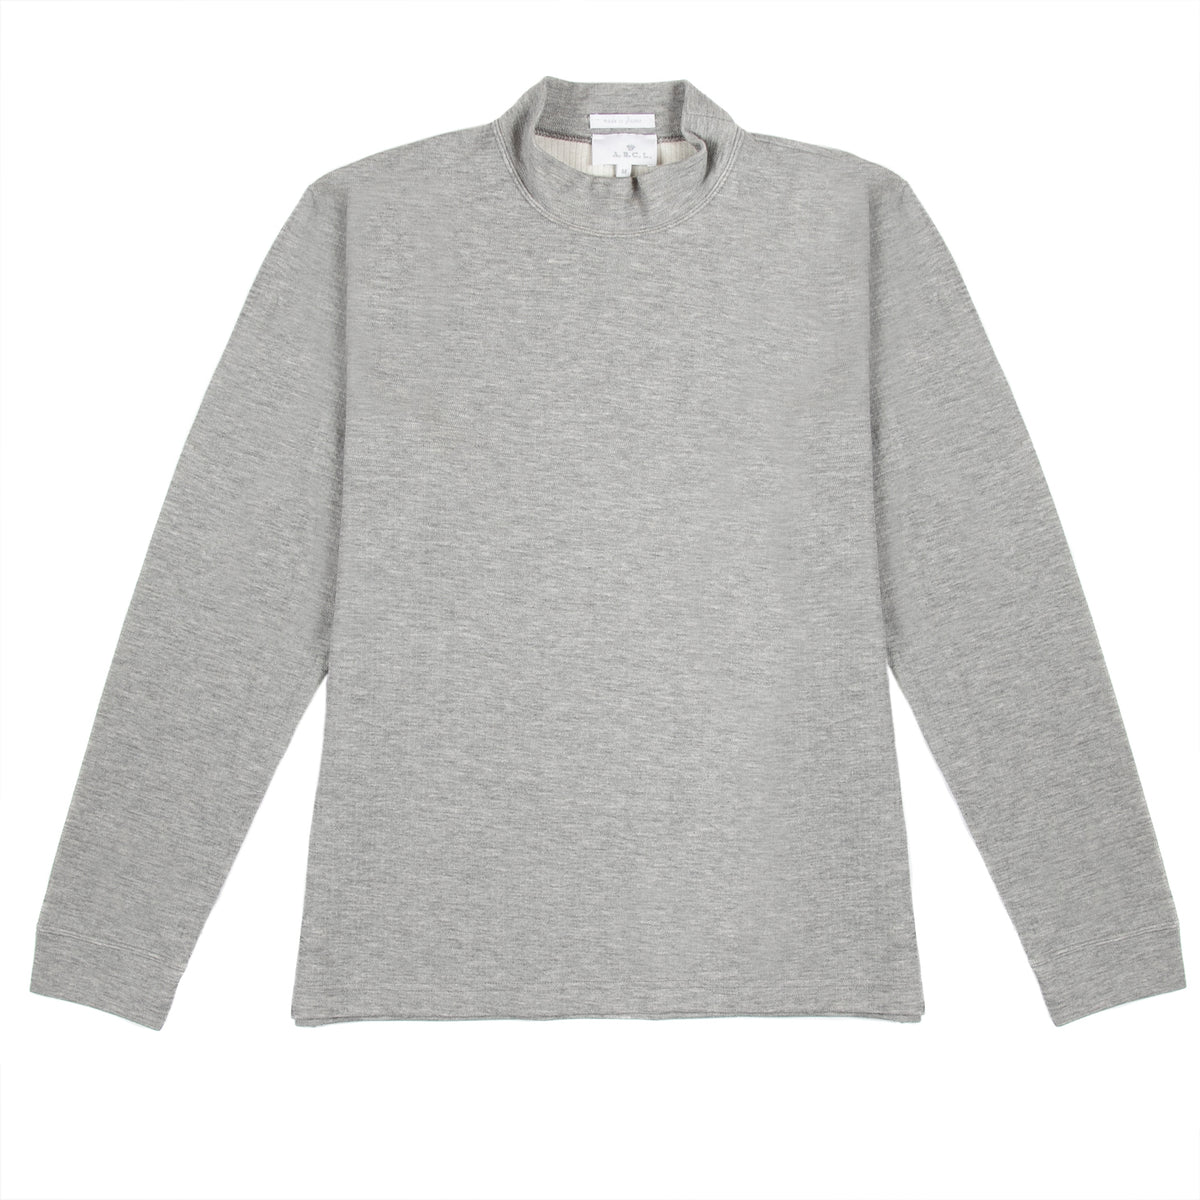 A.B.C.L. - Calm Knit - Grey